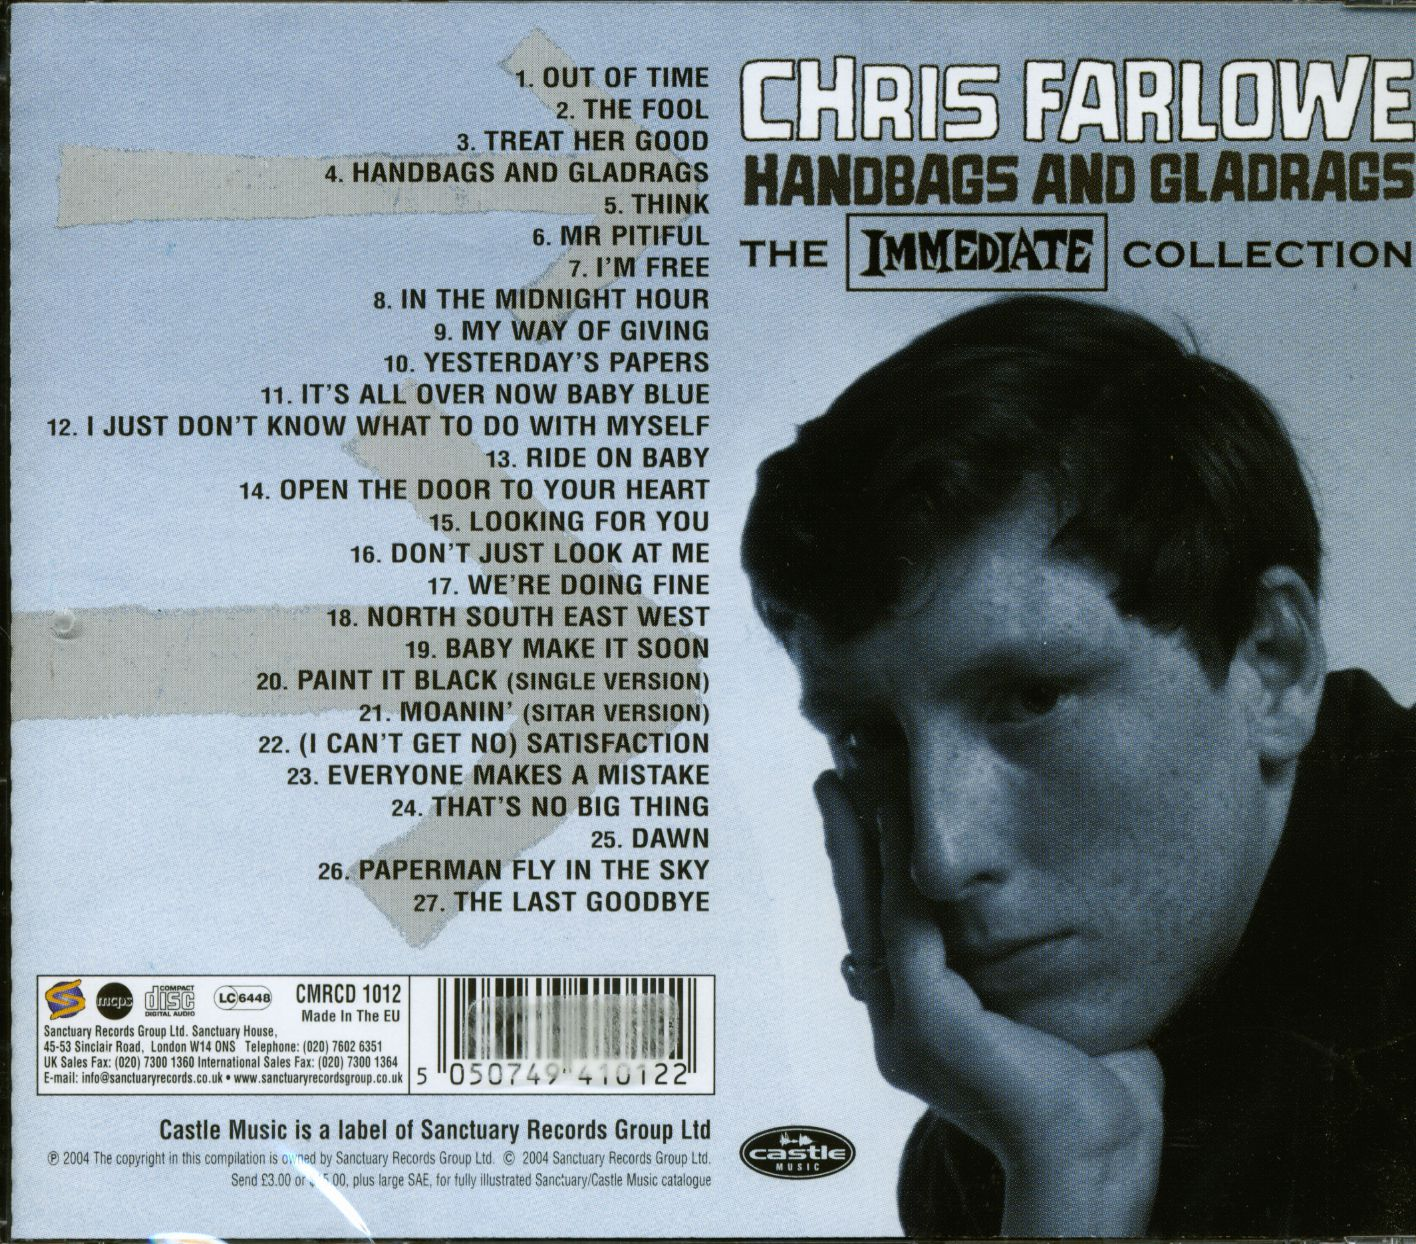 d6724d27eb Chris Farlowe CD  Handbags And Gladrags - Immediate Collection (CD ...